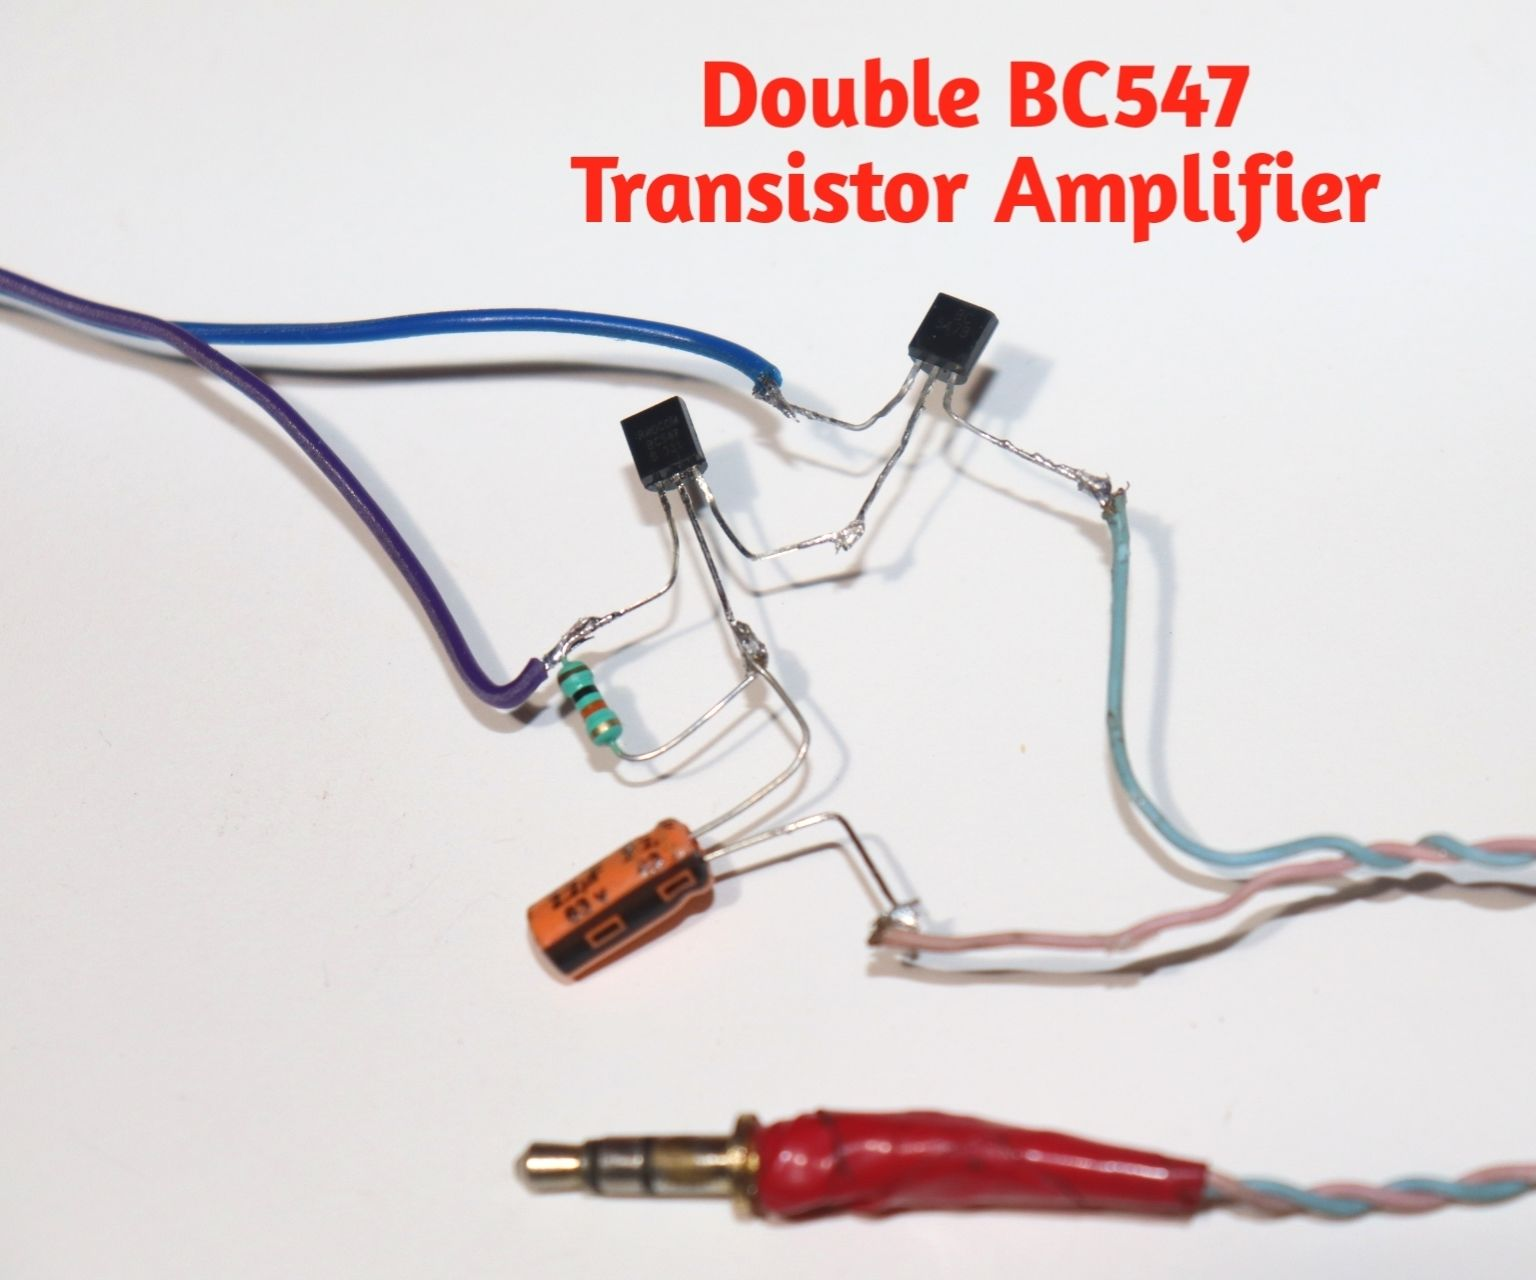 BC547 Double Transistor Audio Amplifier